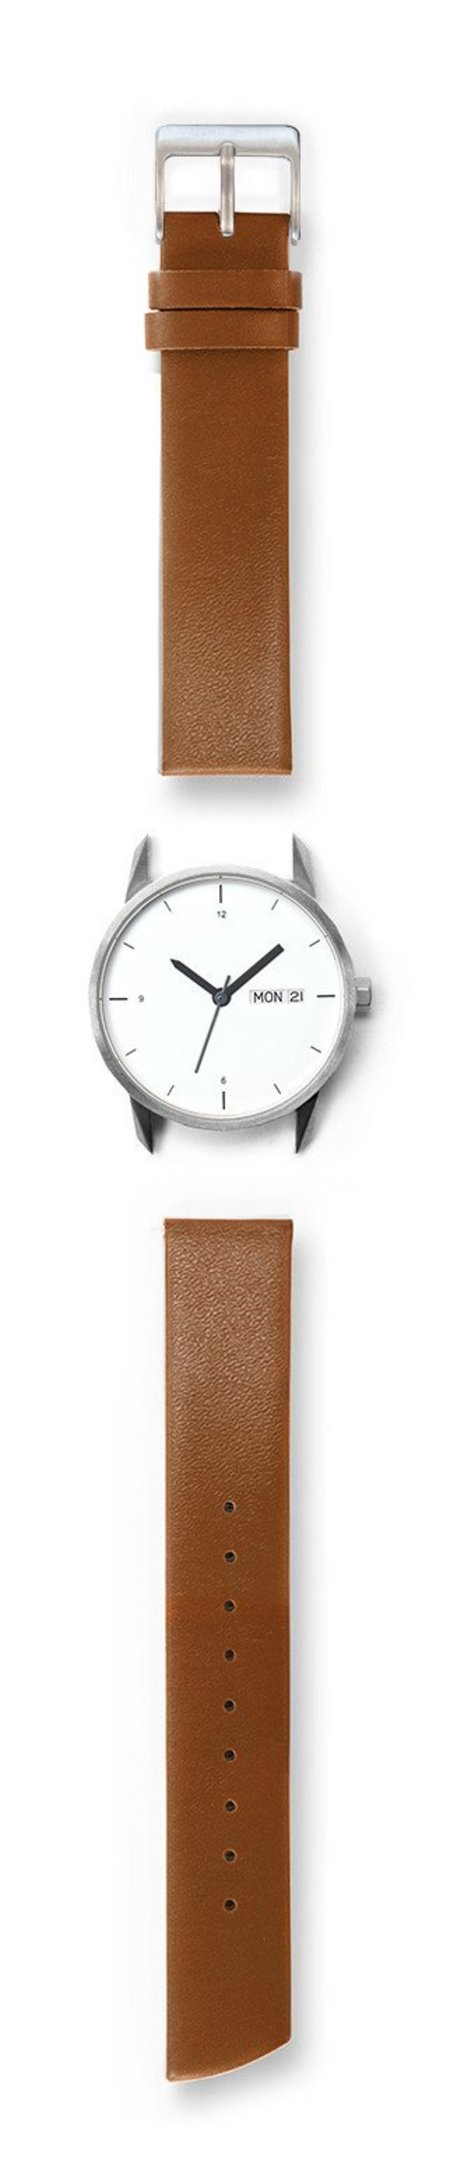 Tinker Watches 34mm Silver Watch Camel Strap